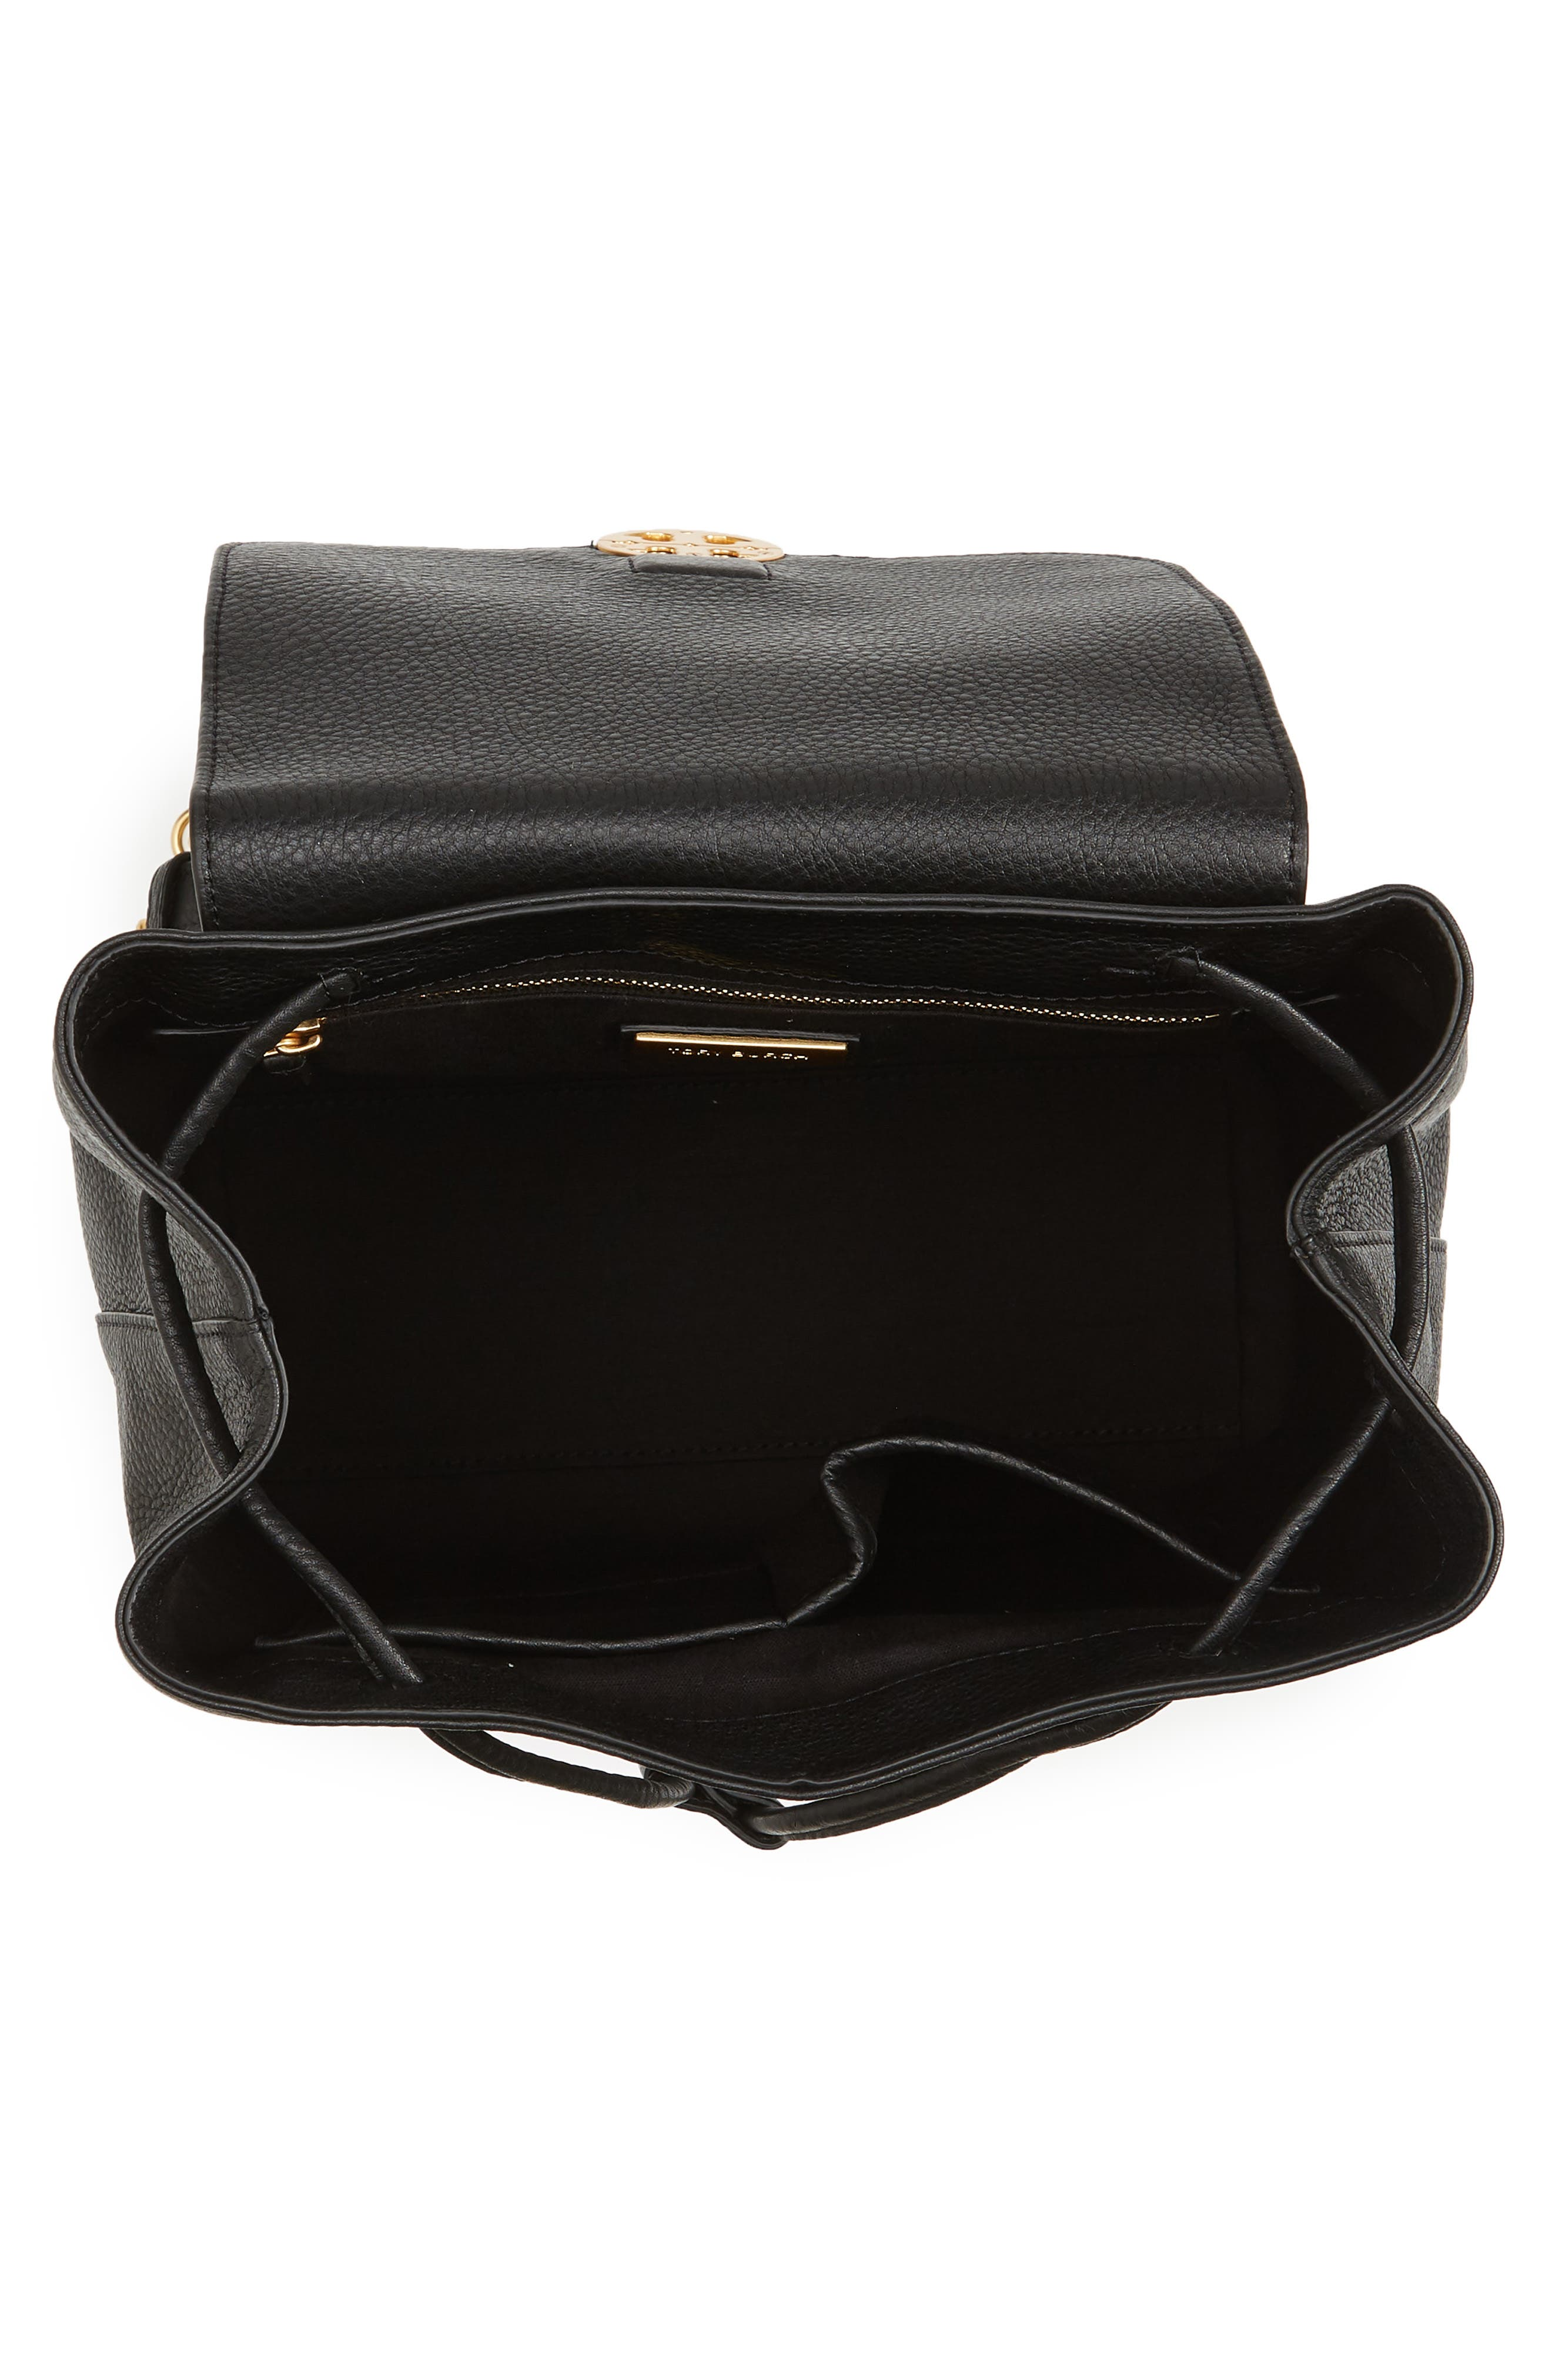 Chelsea Leather Backpack,                             Alternate thumbnail 4, color,                             001